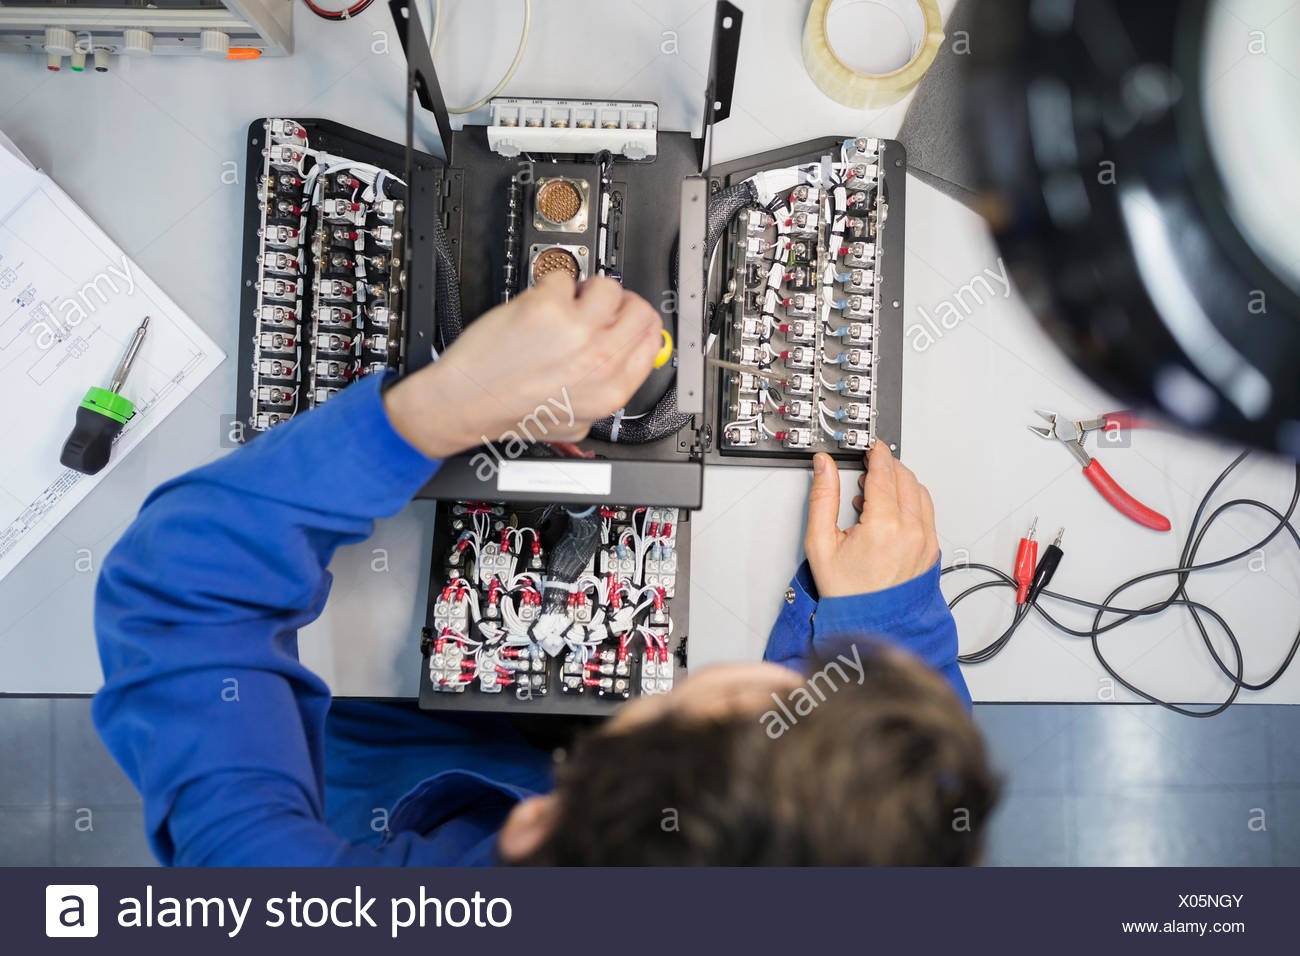 Overhead view helicopter technician working on module - Stock Image